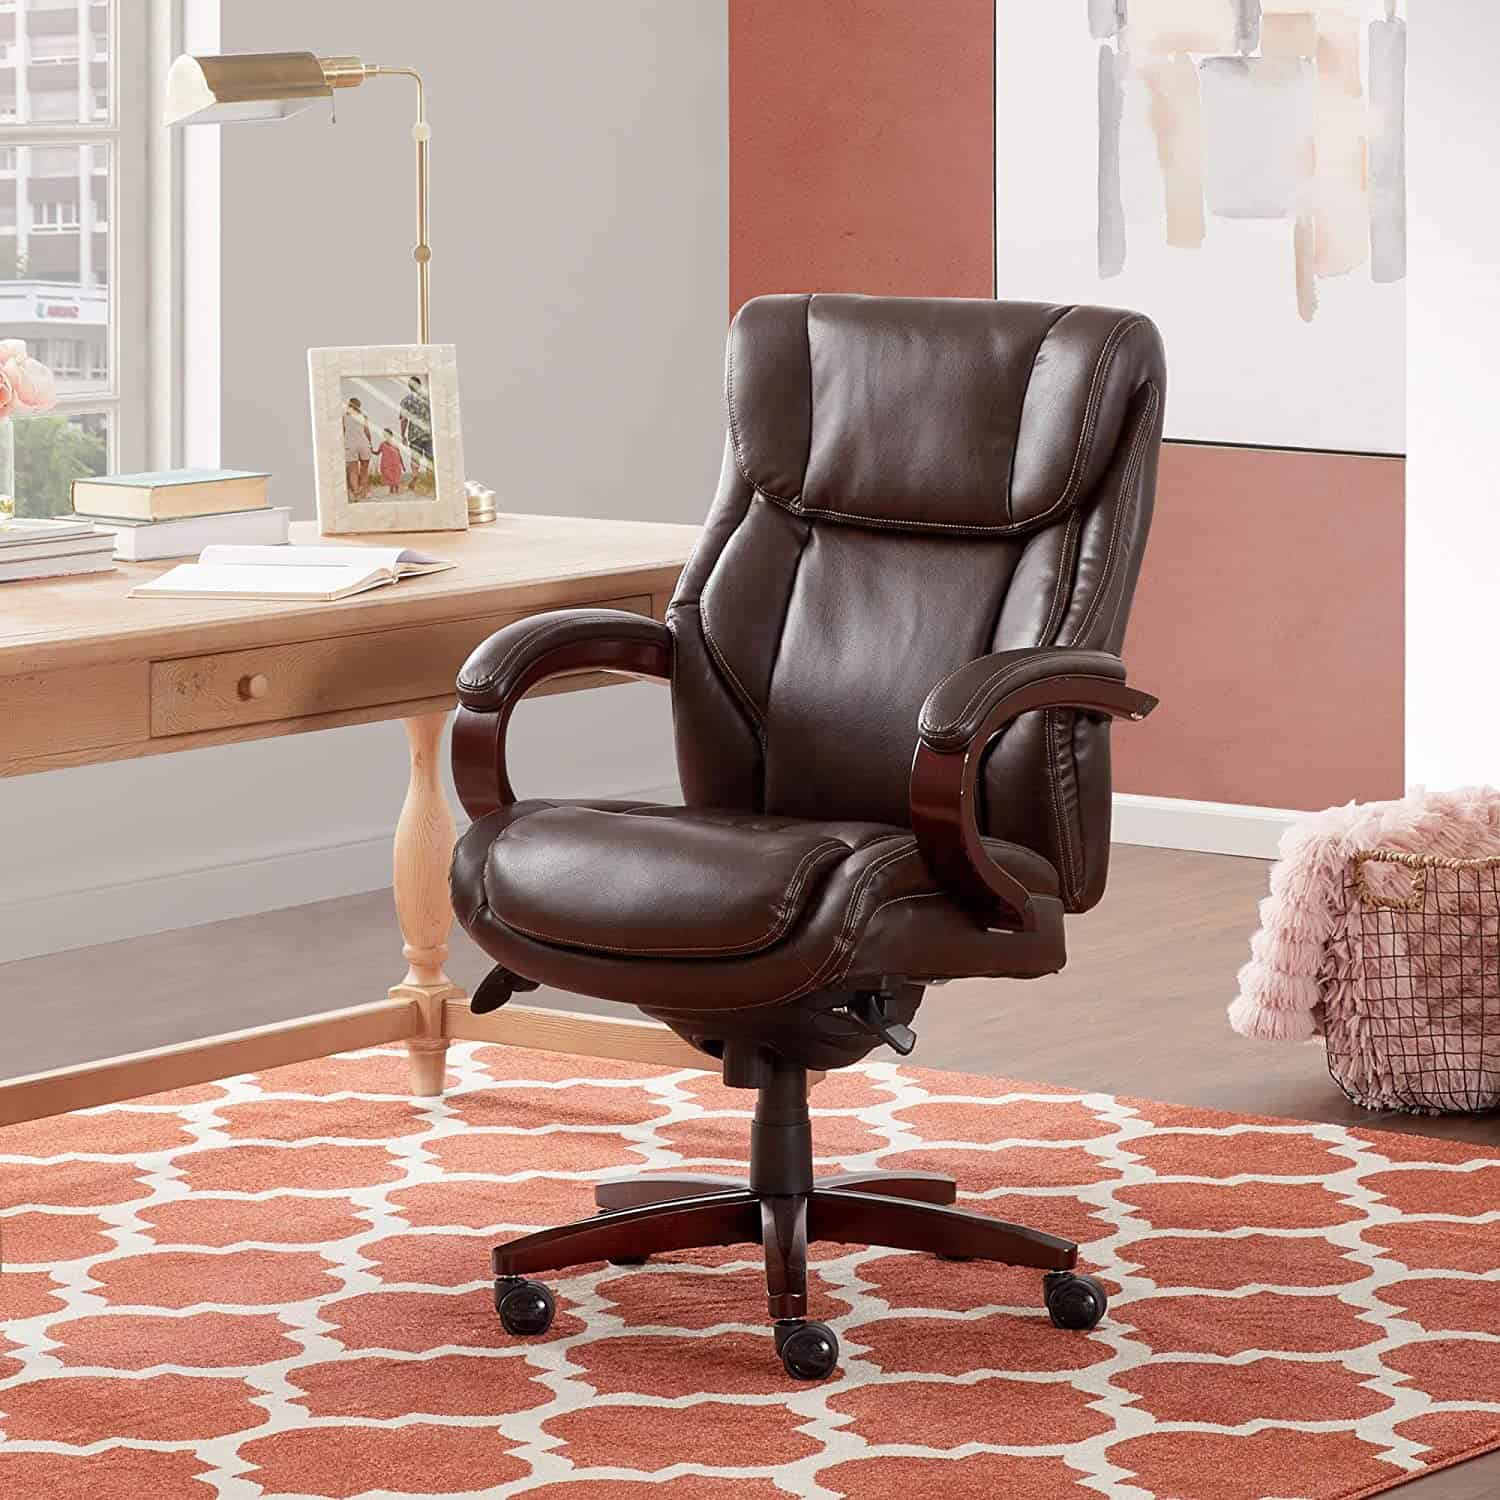 The Most Comfortable Lazyboy Office Chairs In 2020 Reviewed